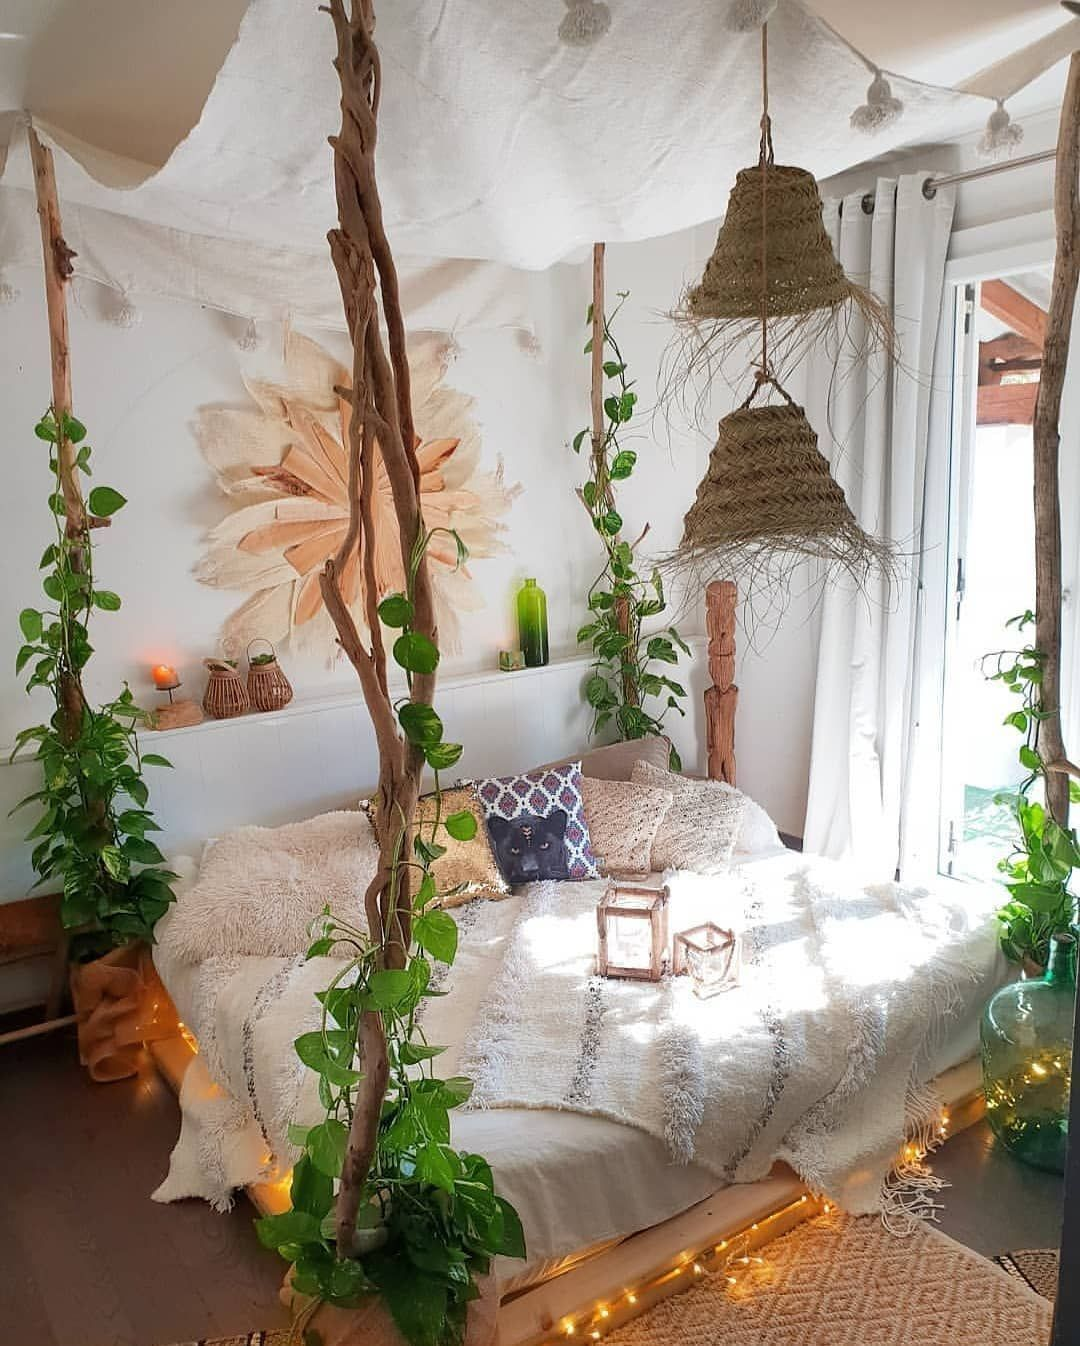 Floating Bed with PLants Ideas